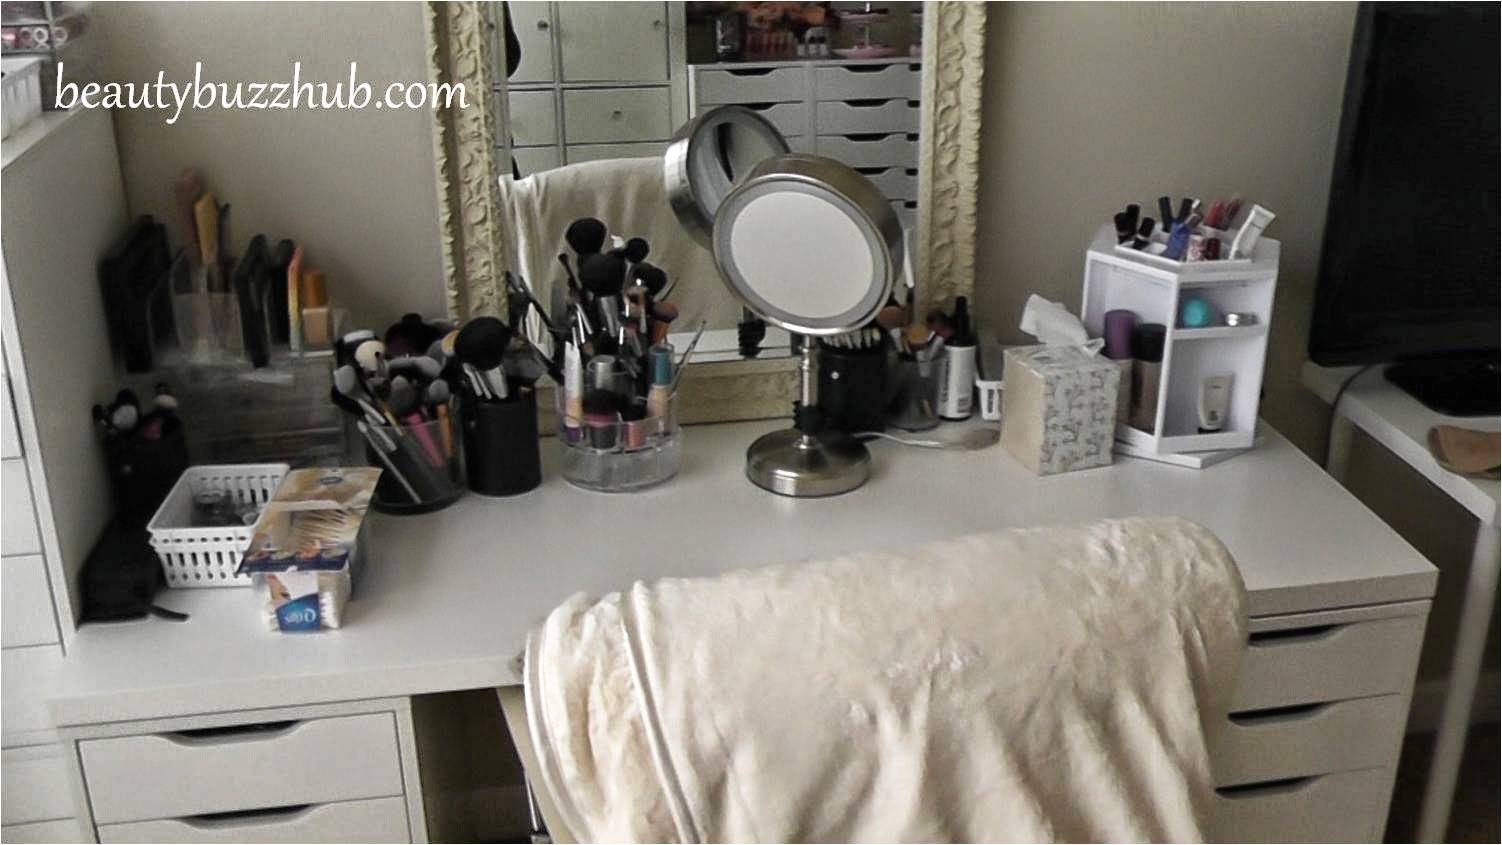 Table Top Spinning Cosmetic Organizer by Lori Greiner  BeautyBuzzHub Makeup  Room Tour New Filming Setup. Makeup Organizer Ikea